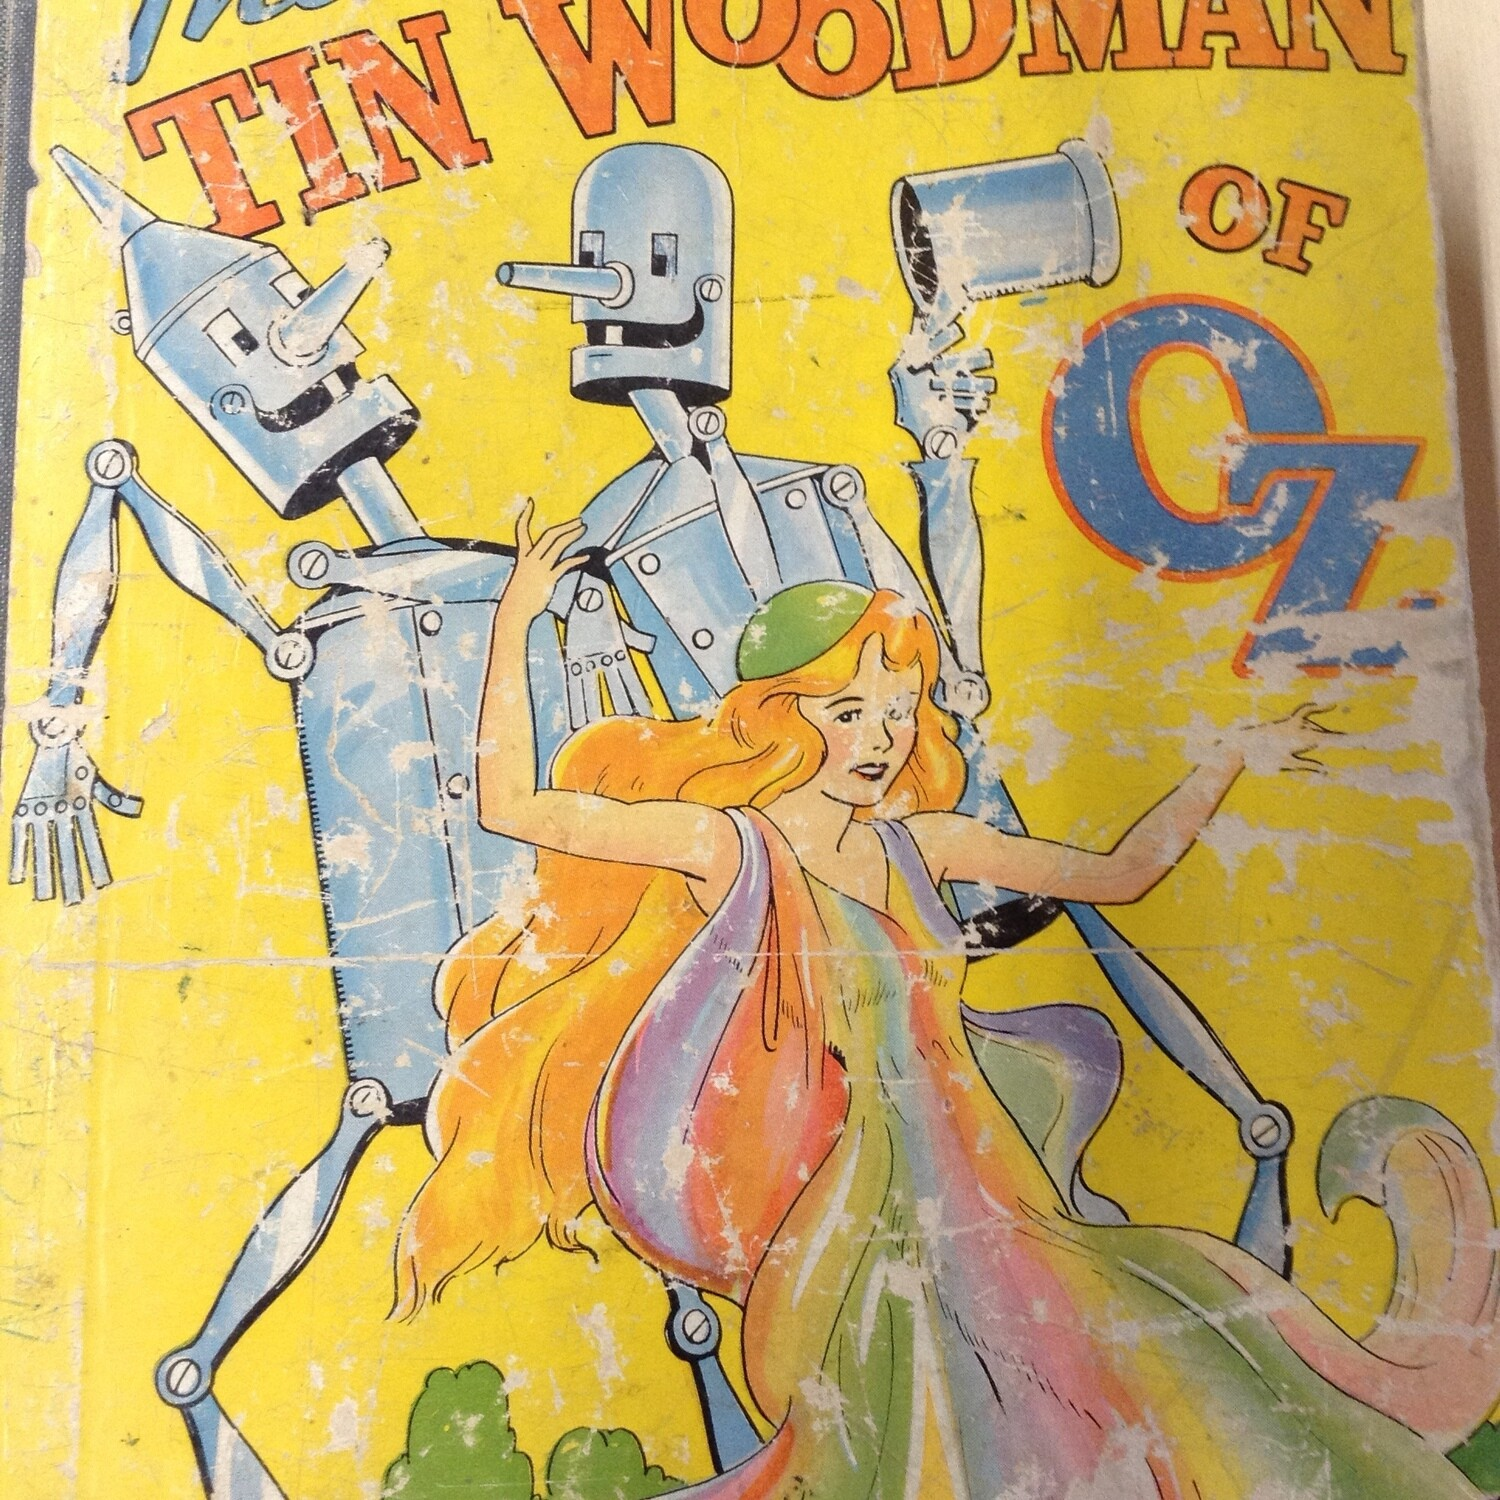 Book: The Tin Woodman of Oz, 1940.